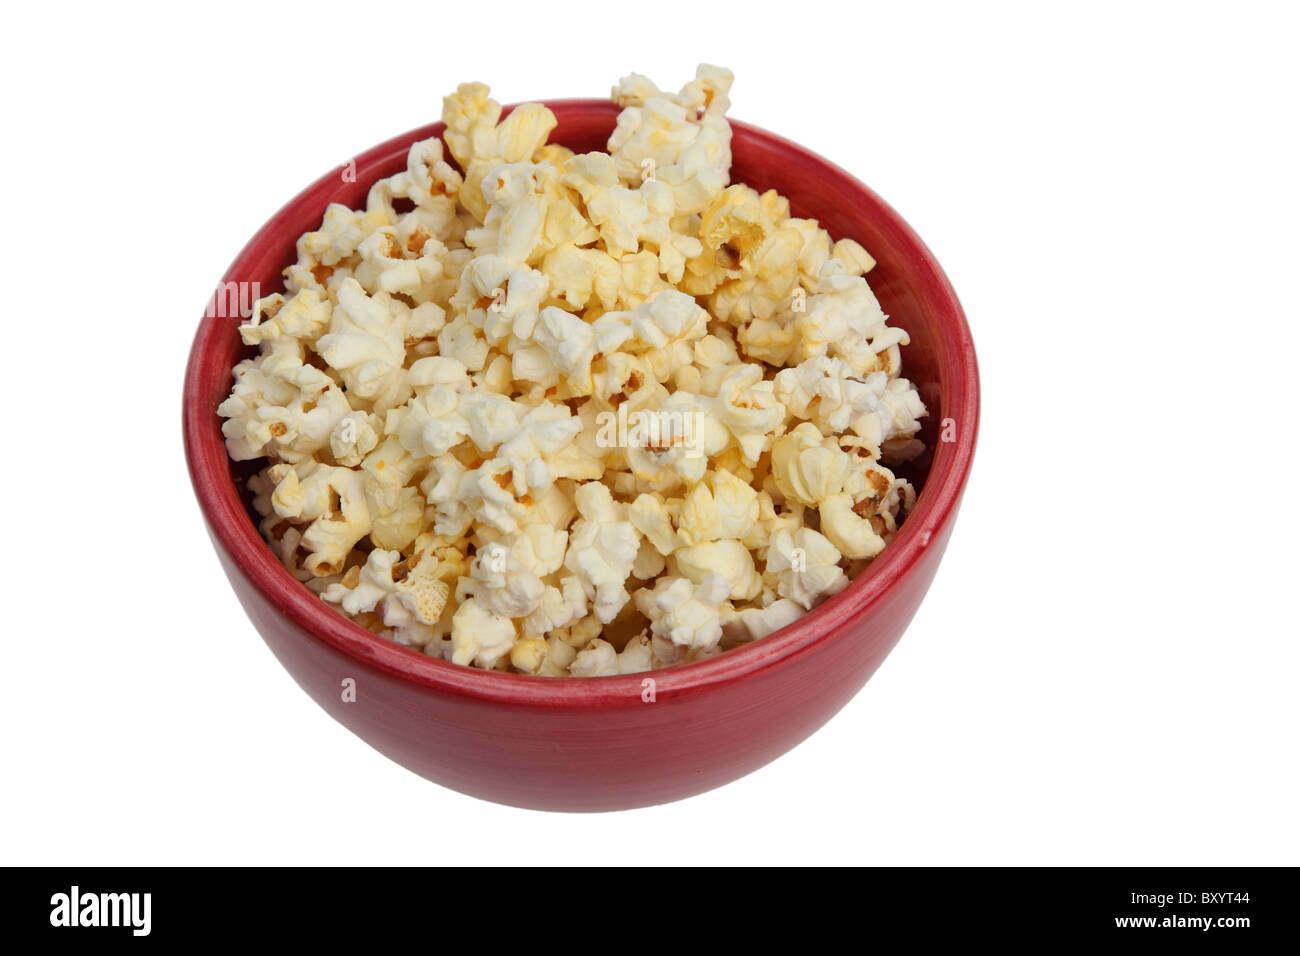 Popcorn in bowl on white background - Stock Image